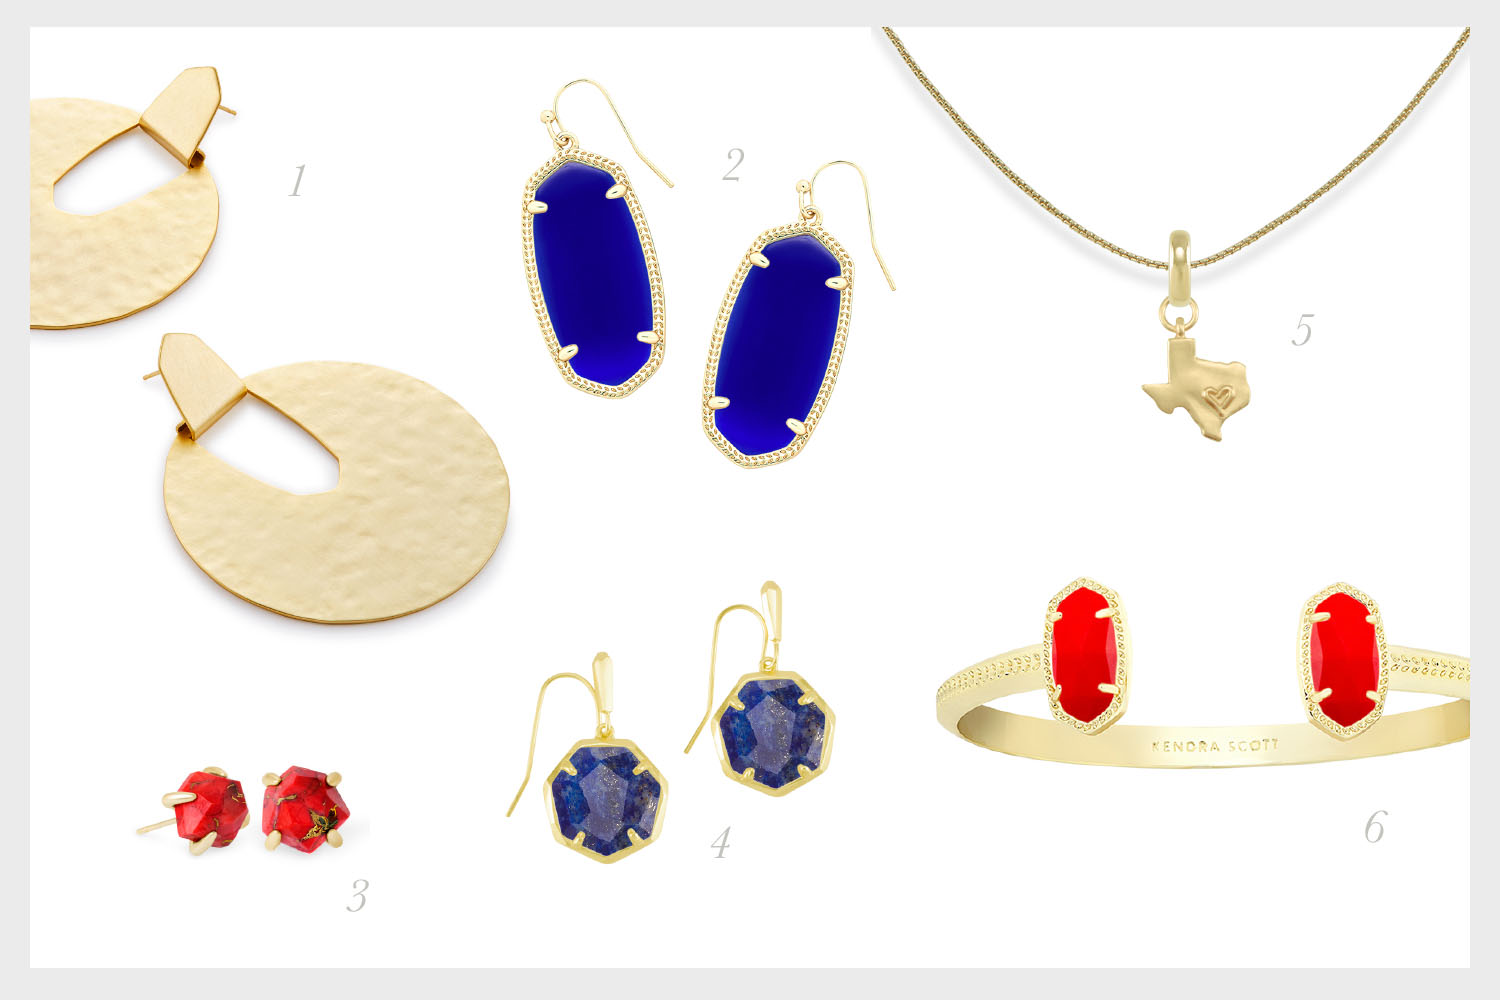 1.    Diane Statement Earrings in Gold   , 2.    Elle Drop Earrings in Cobalt Cat's Eye   , 3.    Ellms Gold Small Stud Earrings in Bronze Veined Red Magnesite    4.    Cynthia Gold Drop Earrings in Lapis    5.    State of Texas Charm with Thin Adjustable Chain Necklace in Gold    6.    Elton Gold Cuff Bracelet in Bright Red